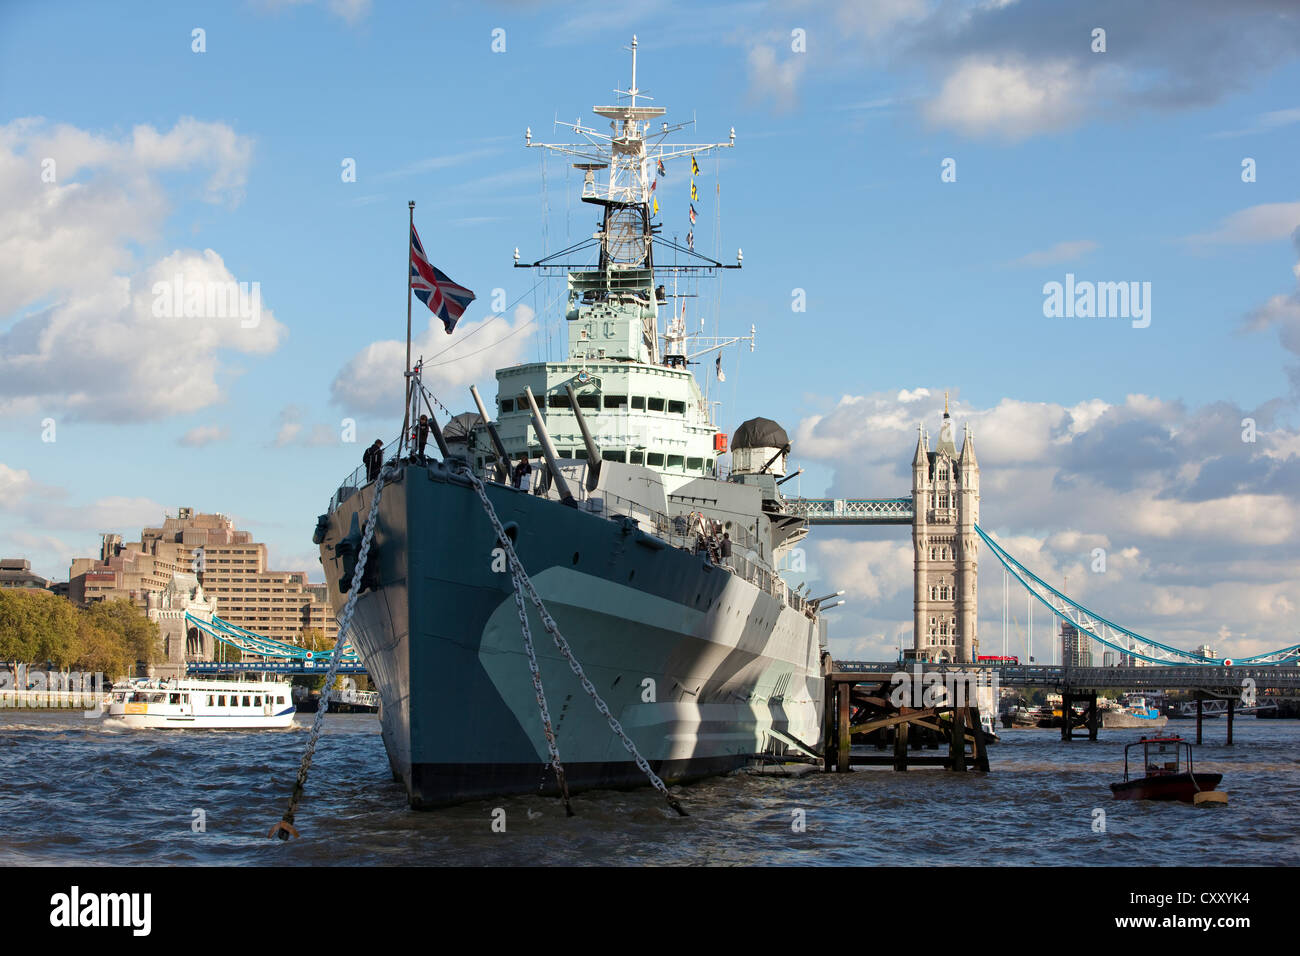 HMS Belfast on the River Thames, in the distance Tower Bridge, London, England, United Kingdom - Stock Image